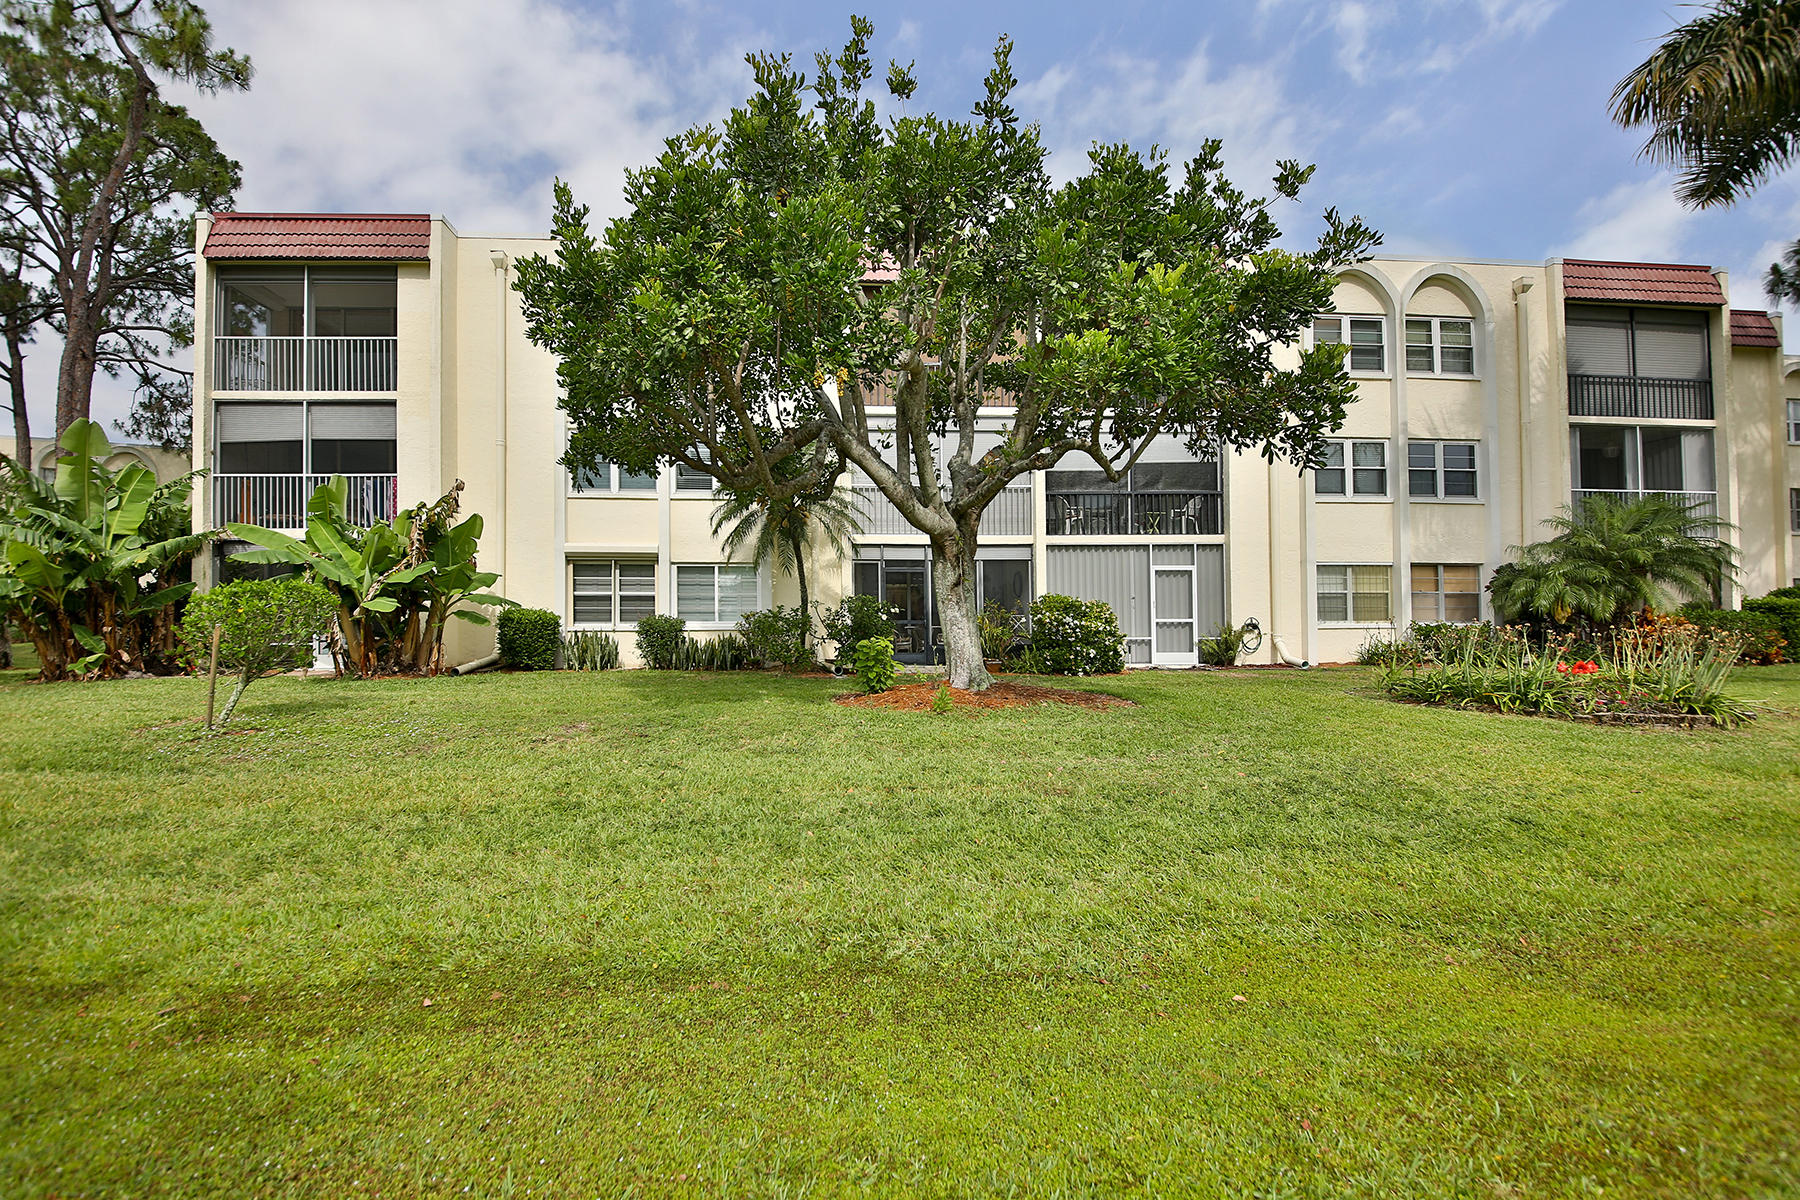 Condominium for Sale at FOREST LAKES 1085 Forest Lakes Dr 309 Naples, Florida, 34105 United States